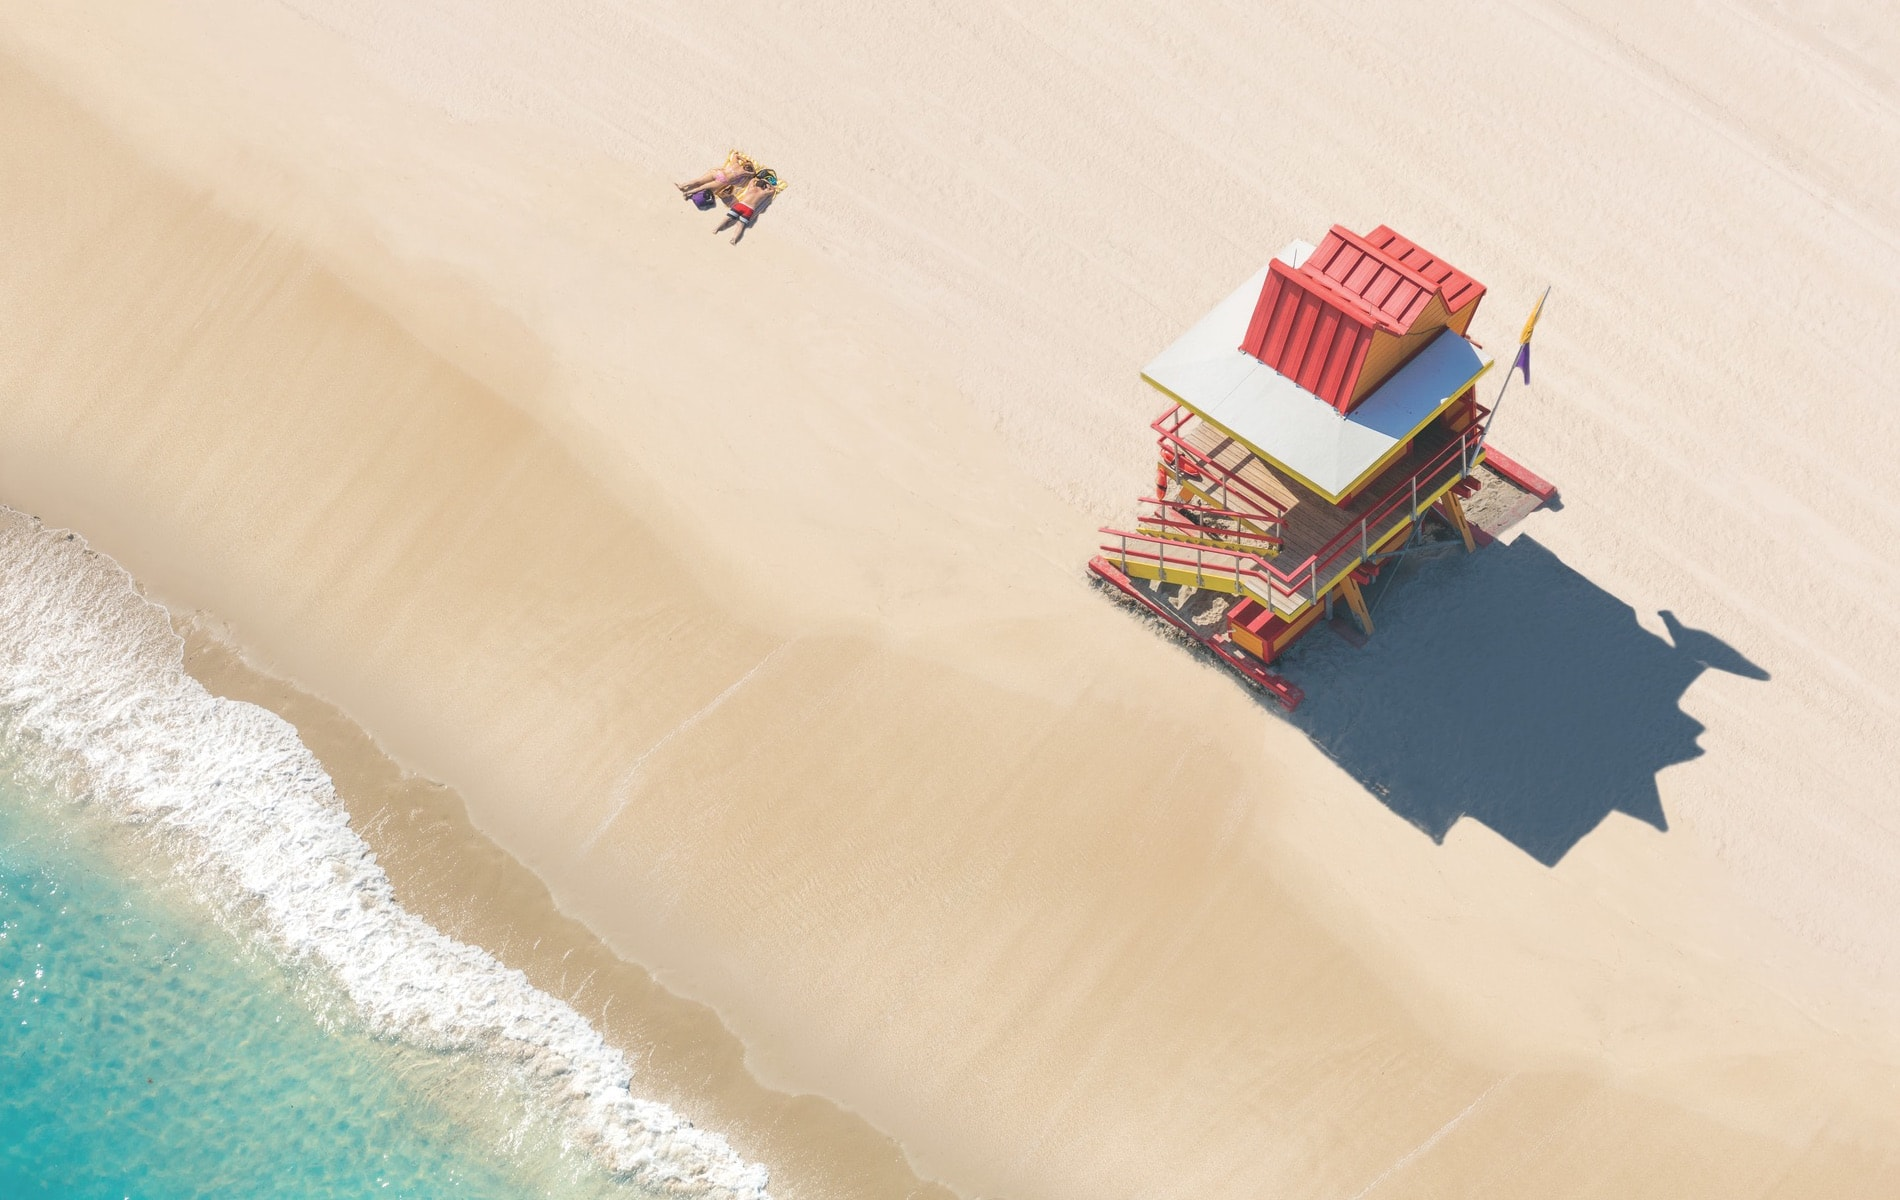 The Lifeguard Stand, South Beach from the À la Plage series. Shooting from a doorless helicopter, Gray Malin photographed this series of beaches and pools around the world including the U.S., Brazil, and Australia.